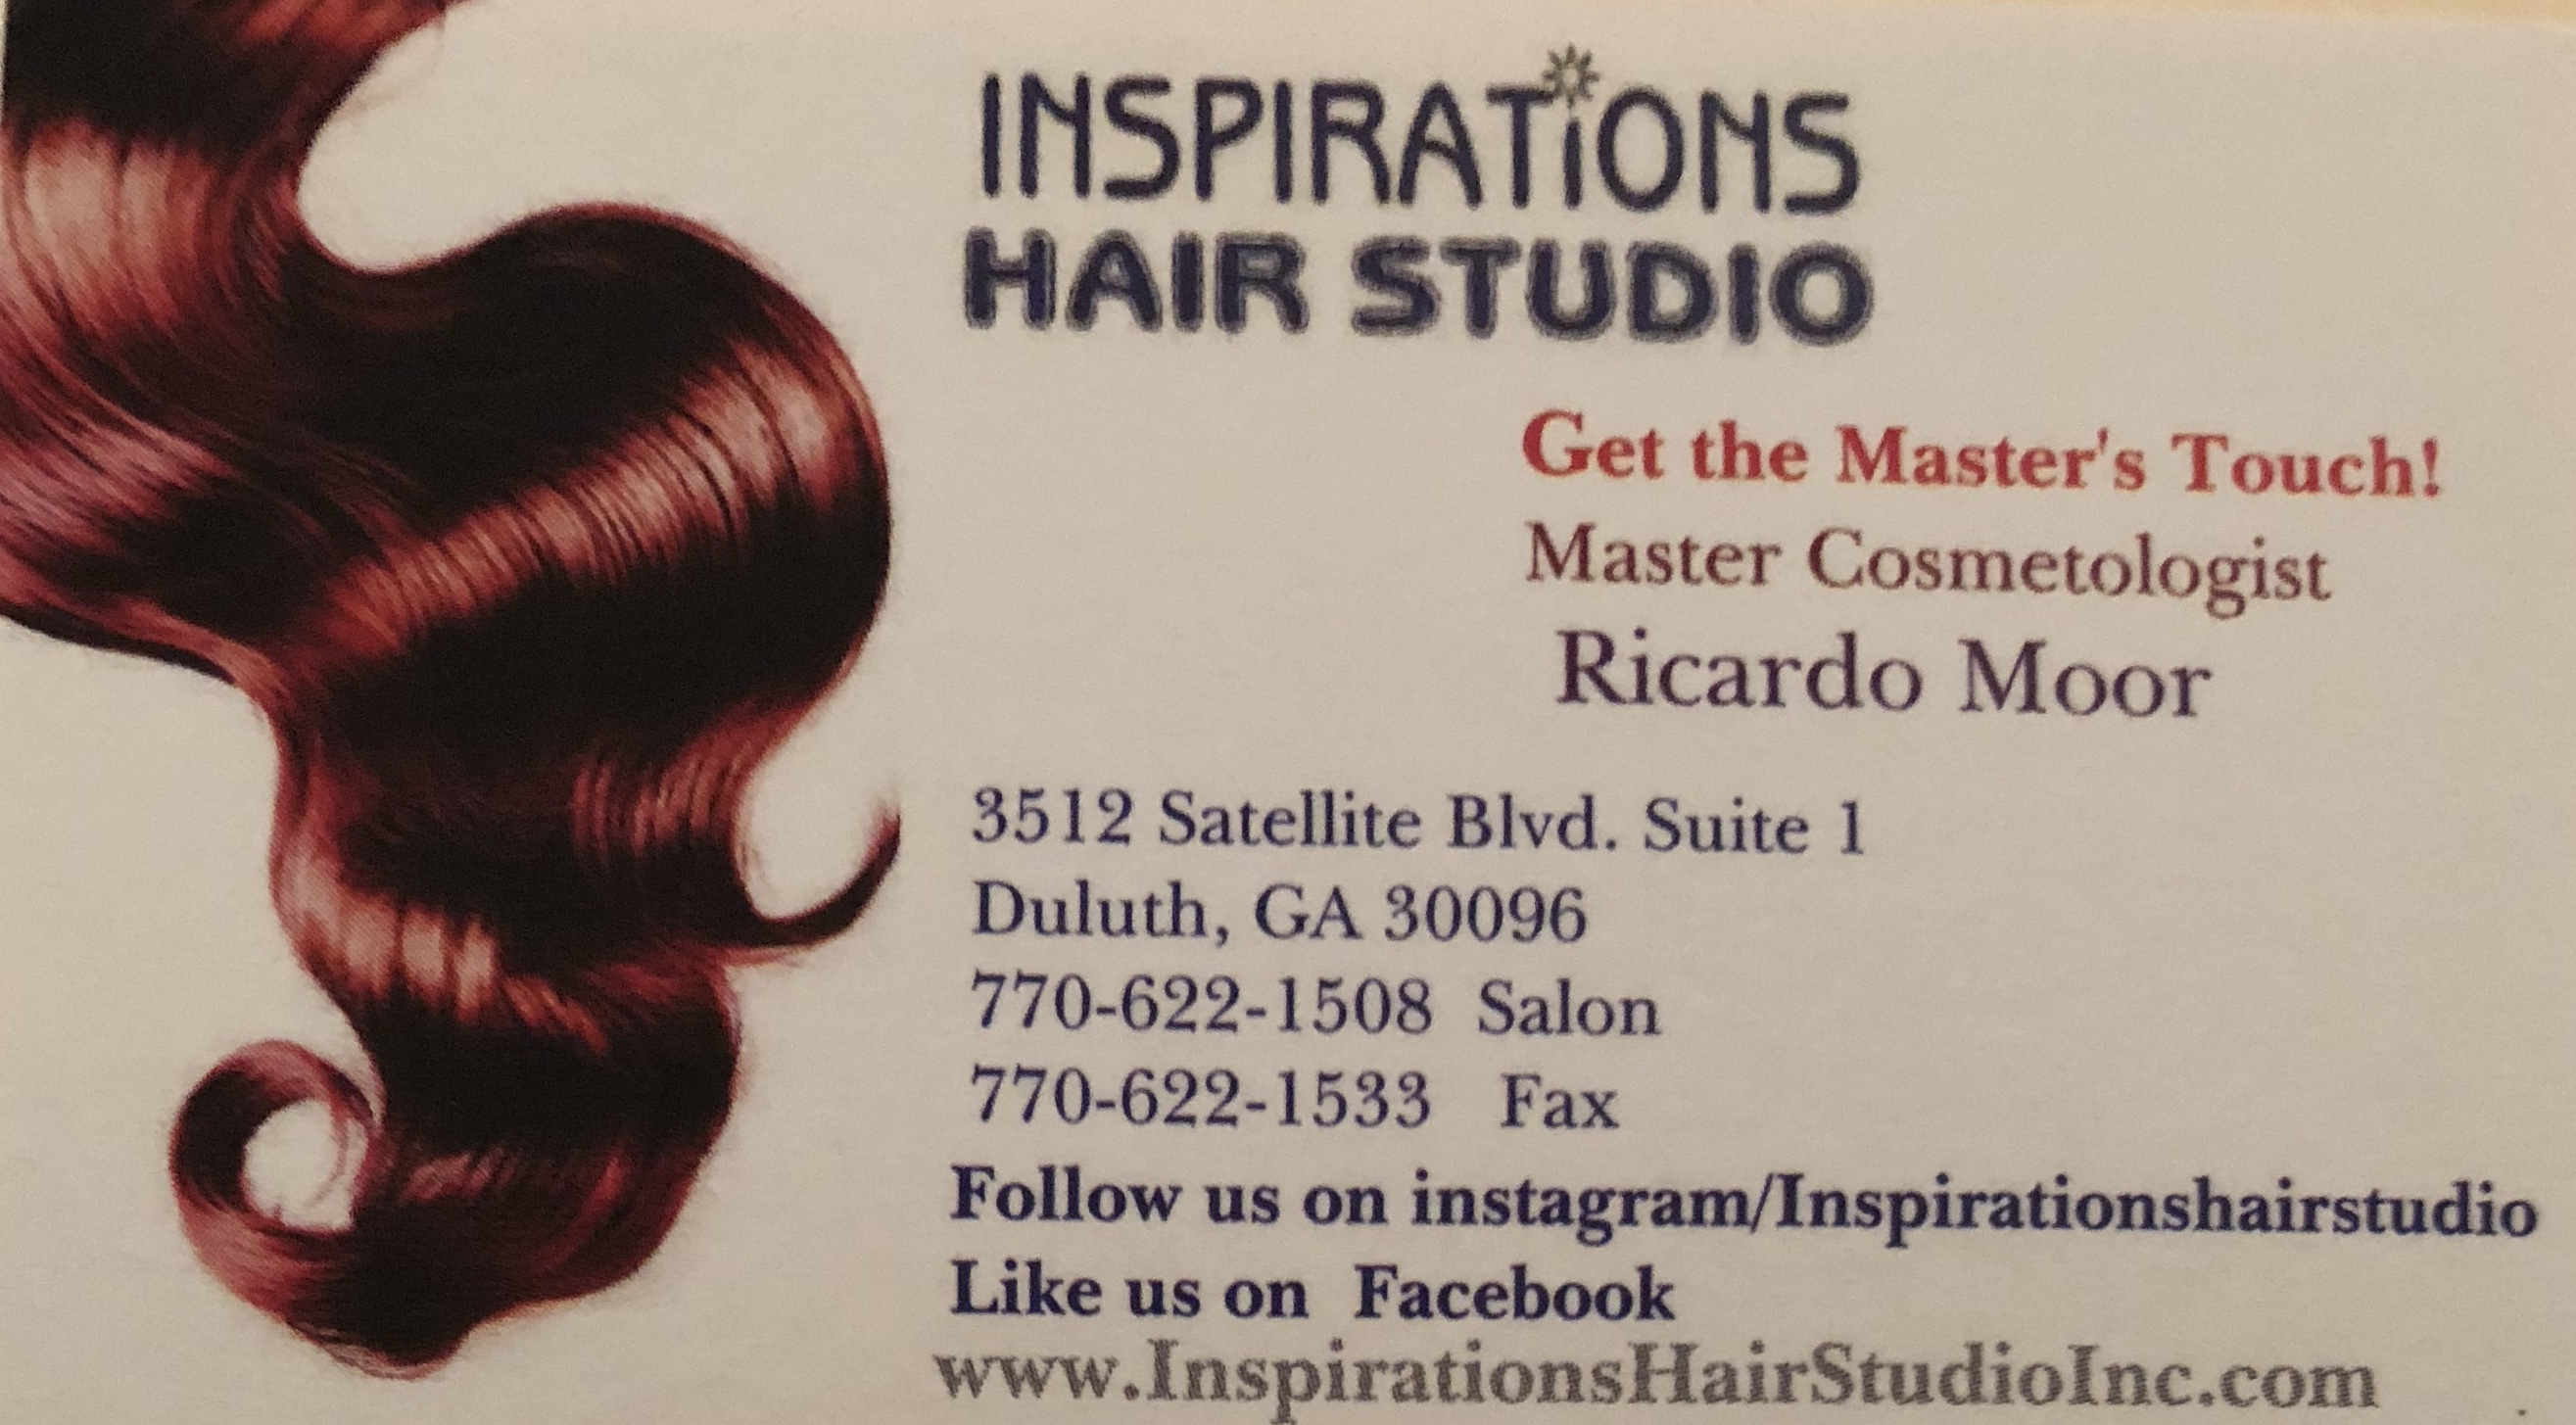 inspirations Hair Studio